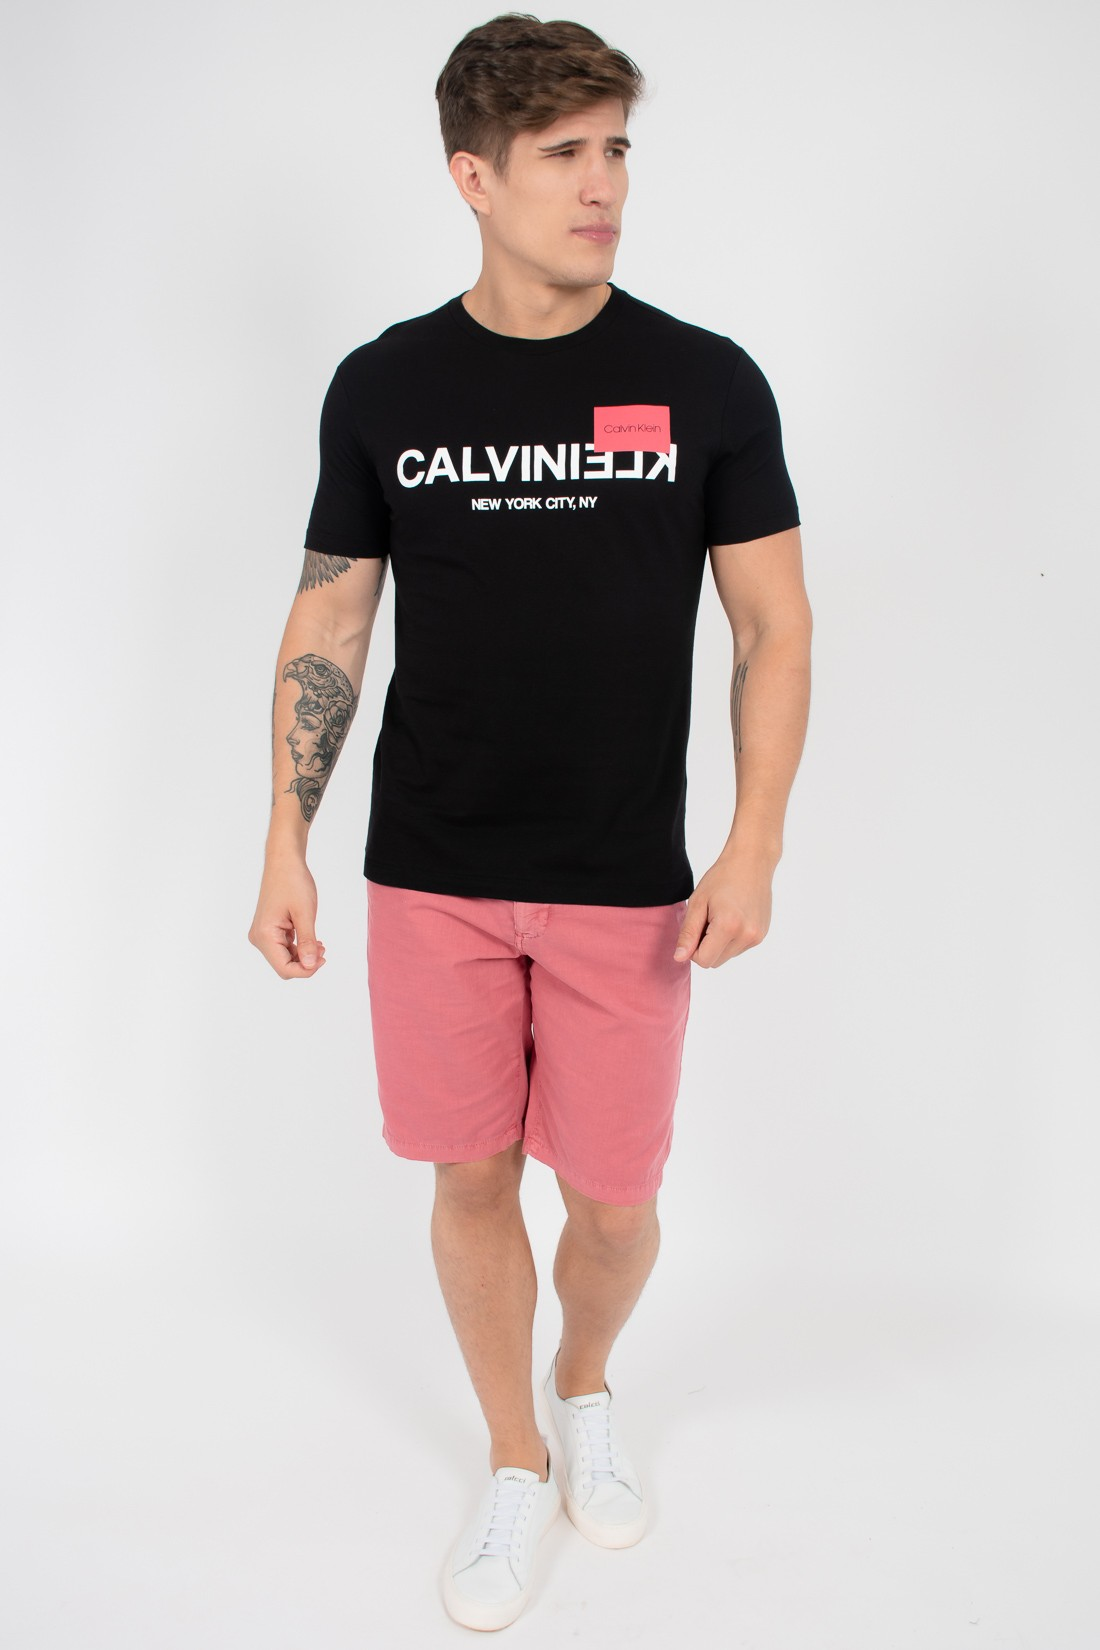 Camiseta Mc Calvin Klein New York City